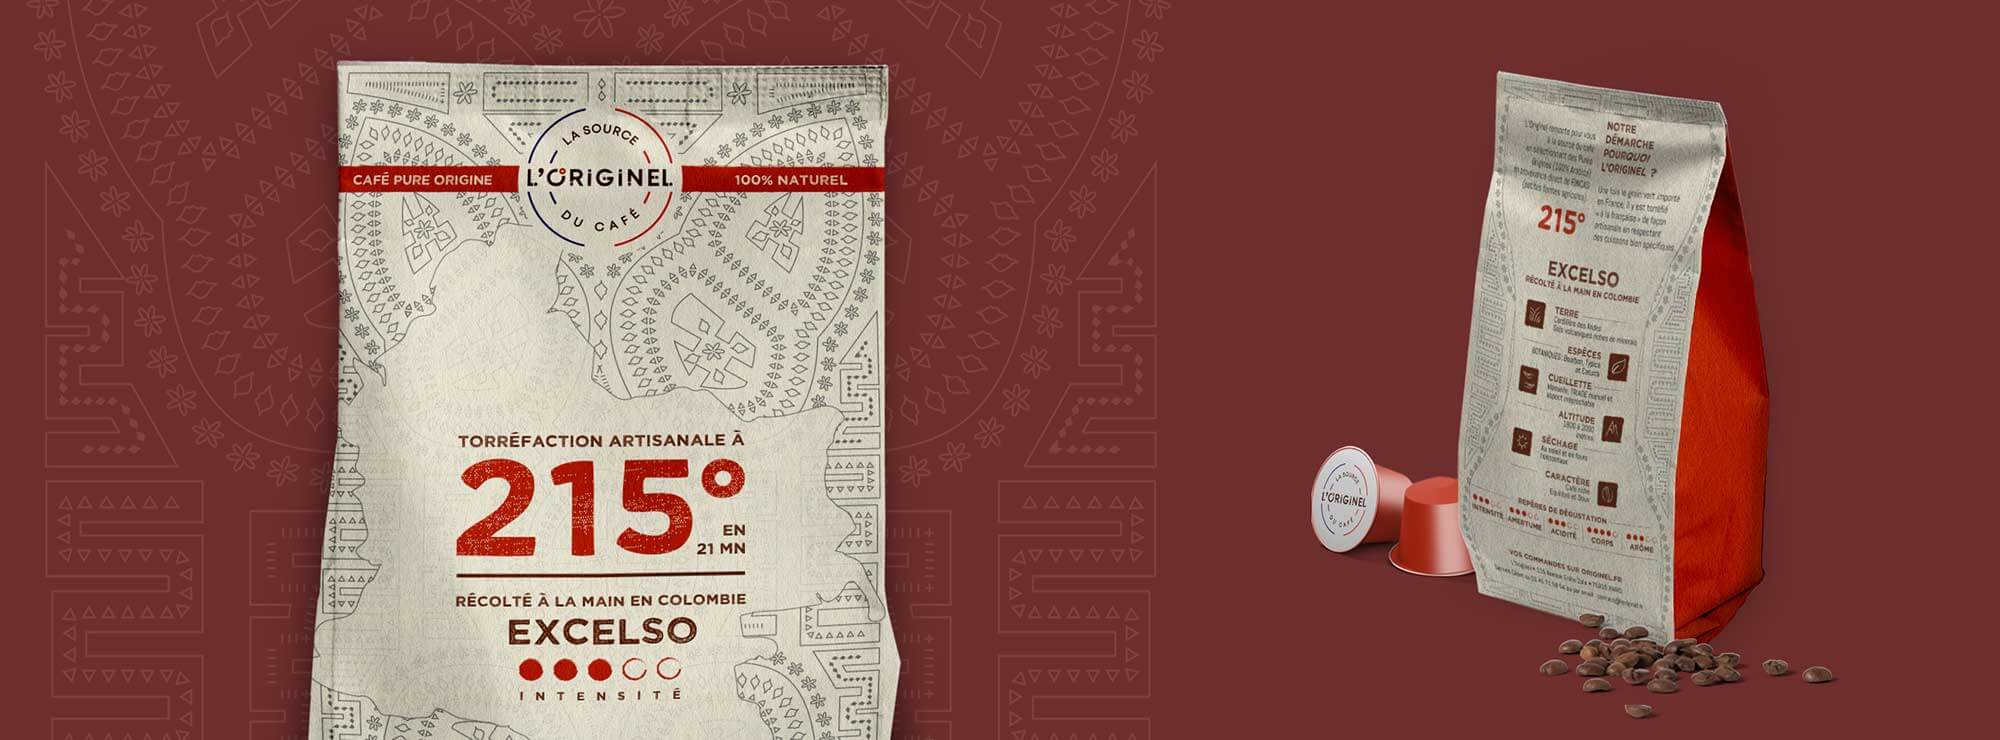 03 l originel packaging coffee capsule colombie pattern.jpg